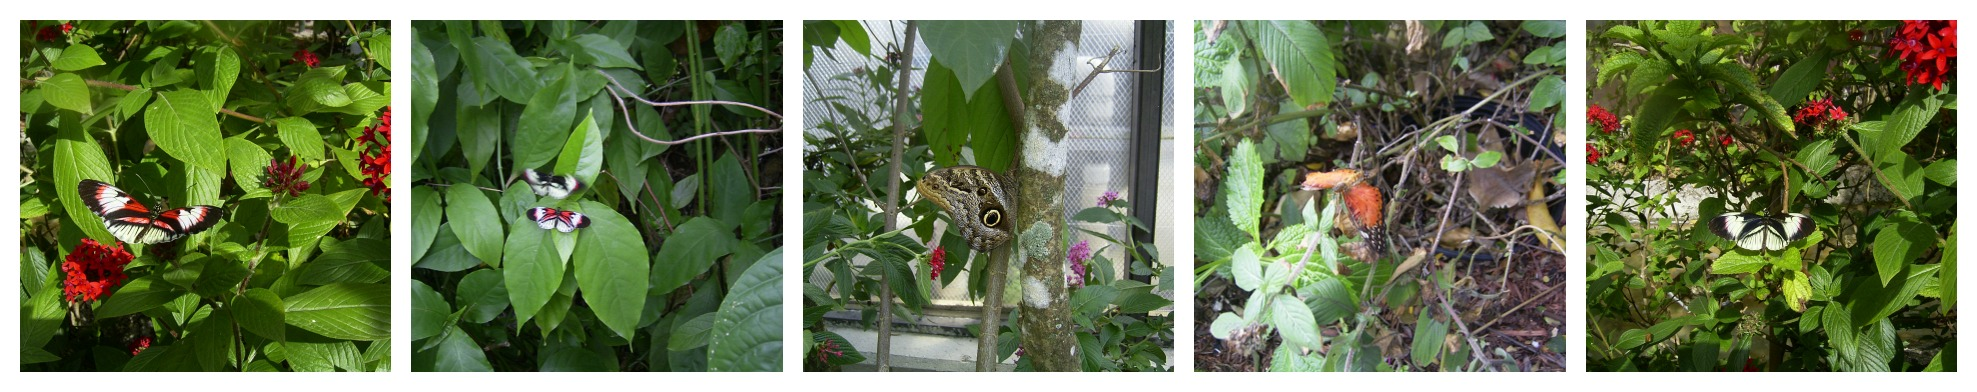 Pictures from the Butterfly House, Ft. Lauderdale, FL (2013)